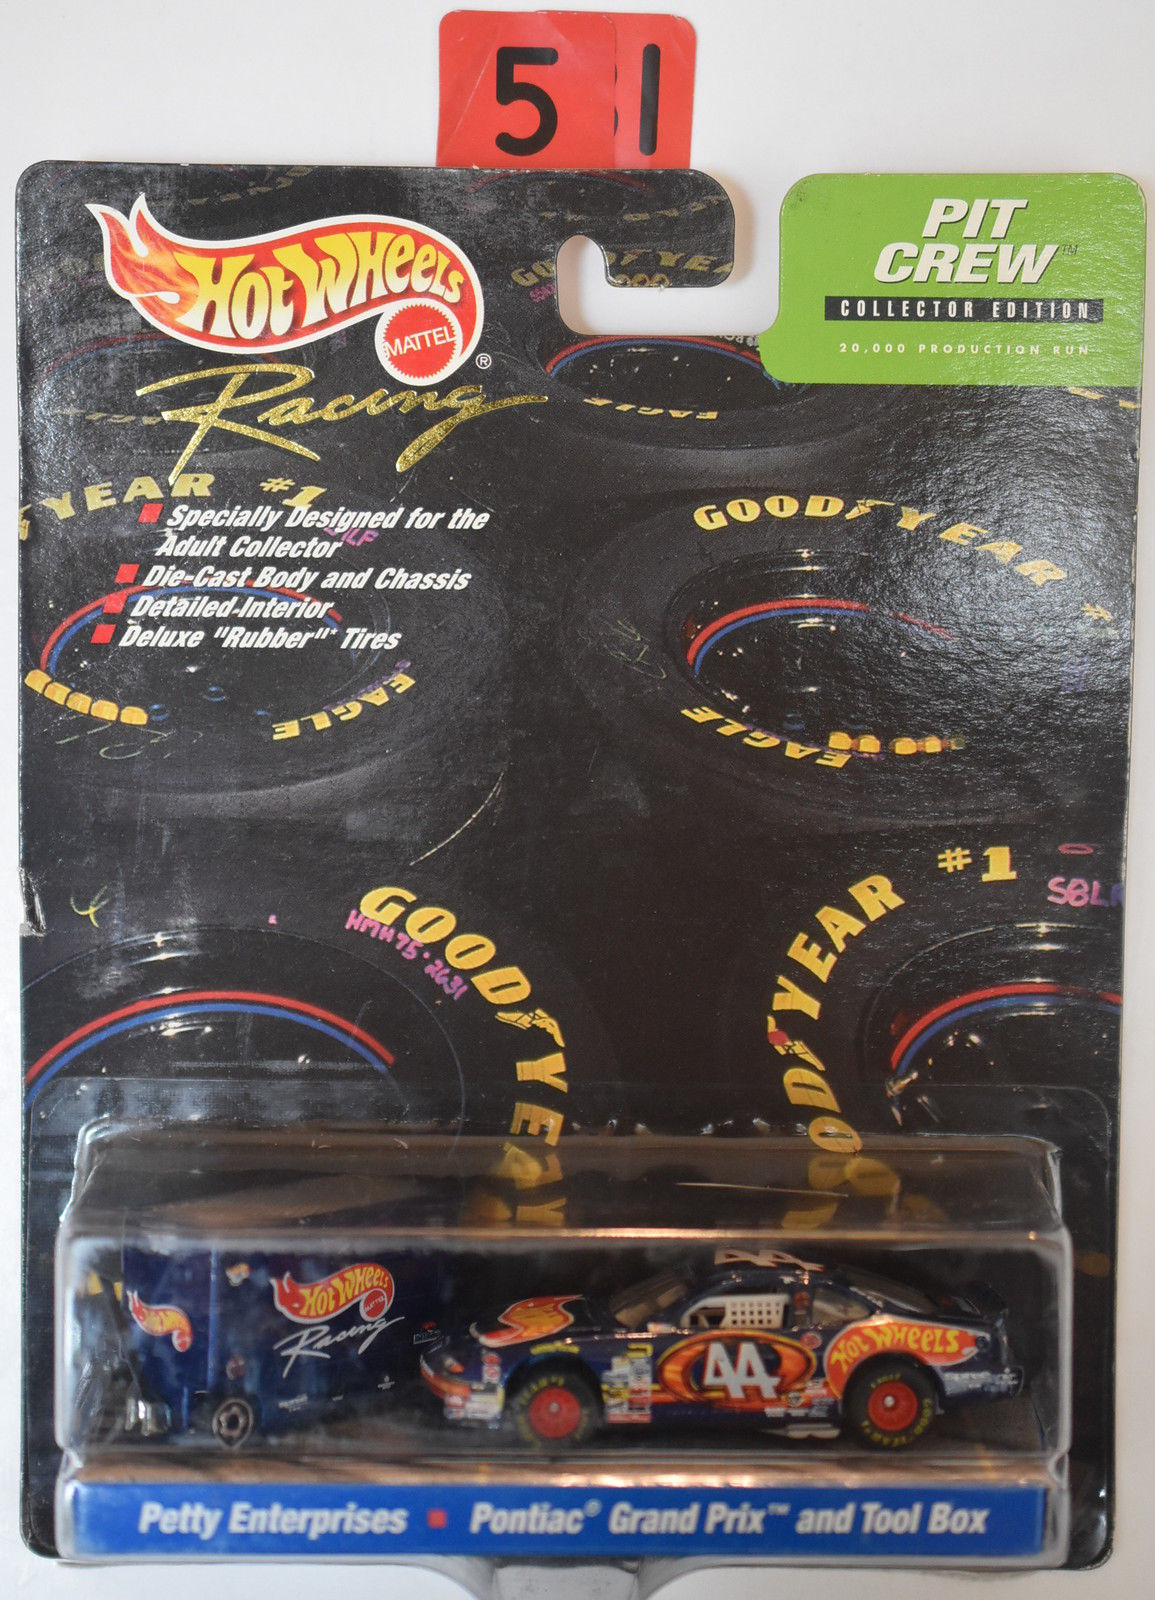 HOT WHEELS RACING PIT CREW KYLE PETTY PONTIAC GRAND PRIX & TOOL BOX #44